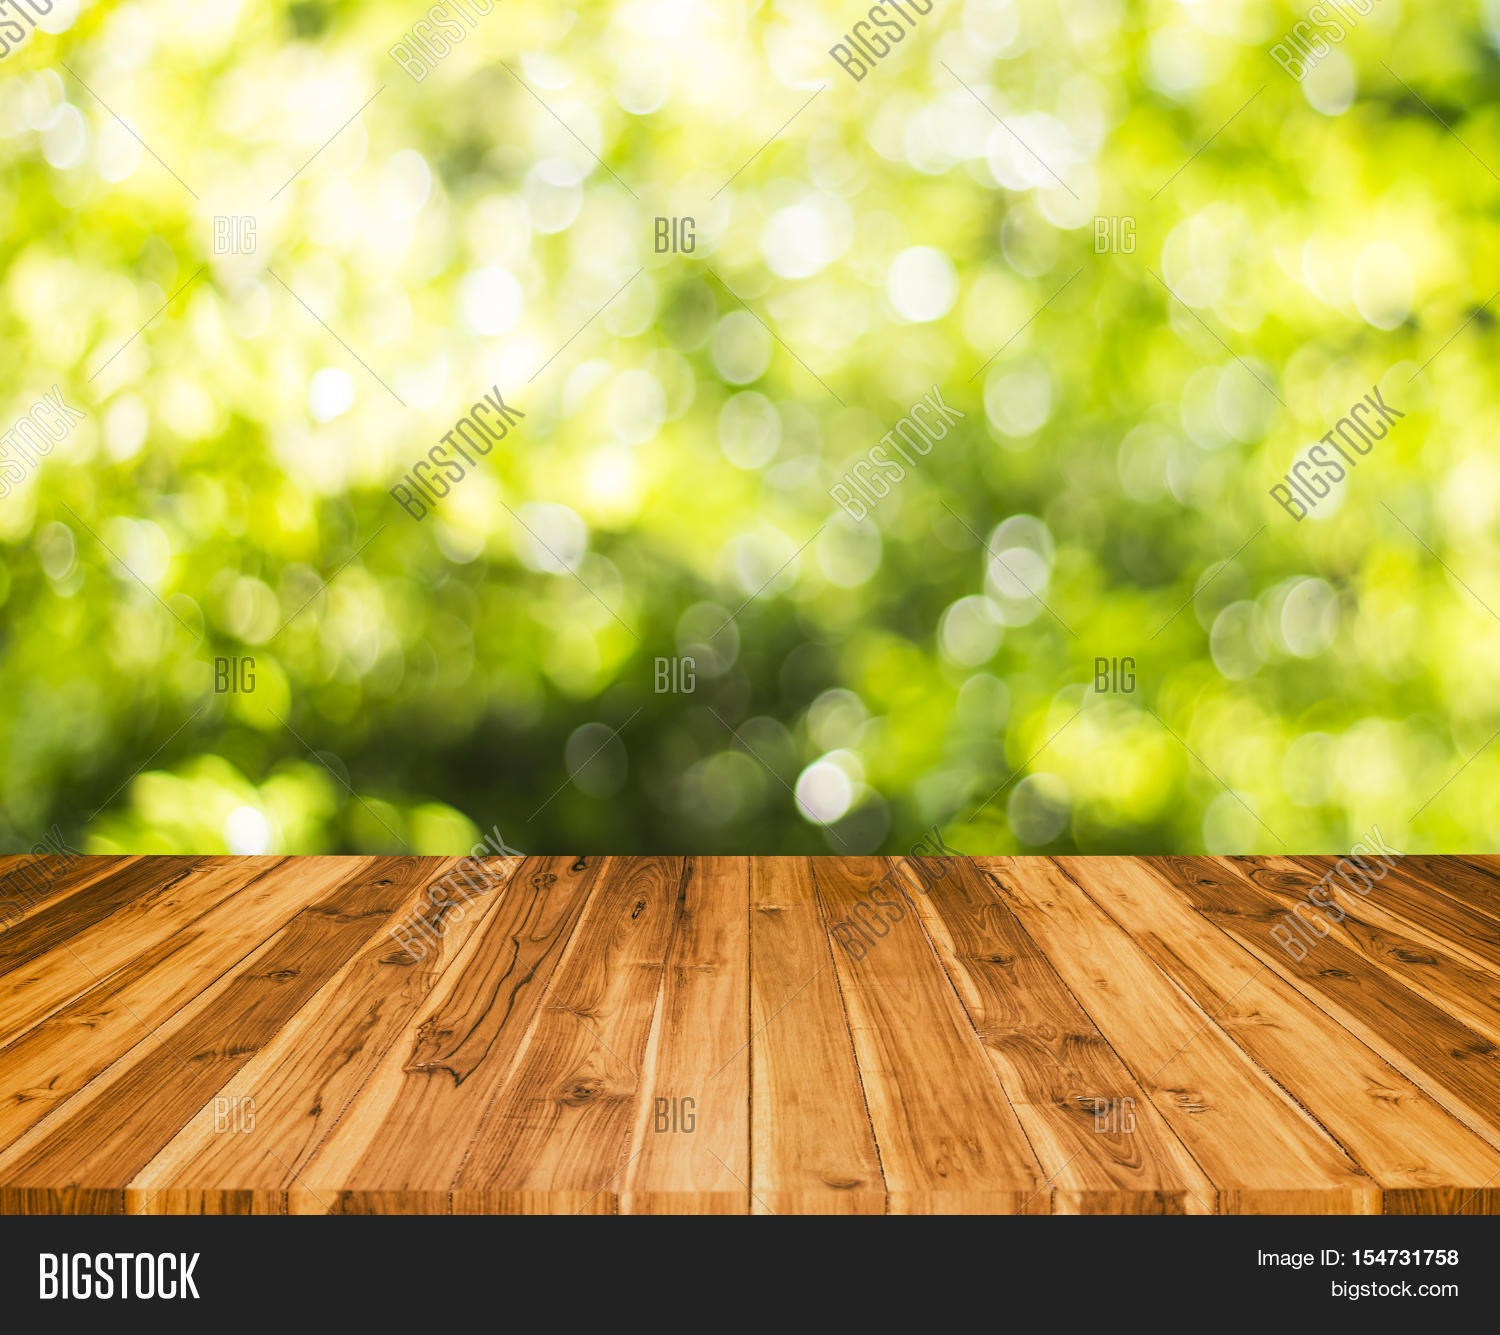 Wood Table With Blur Tree Background  Abstract Blur Background Wood Table  For Display Your Product. Wood Table Blur Tree Background  Image   Photo   Bigstock